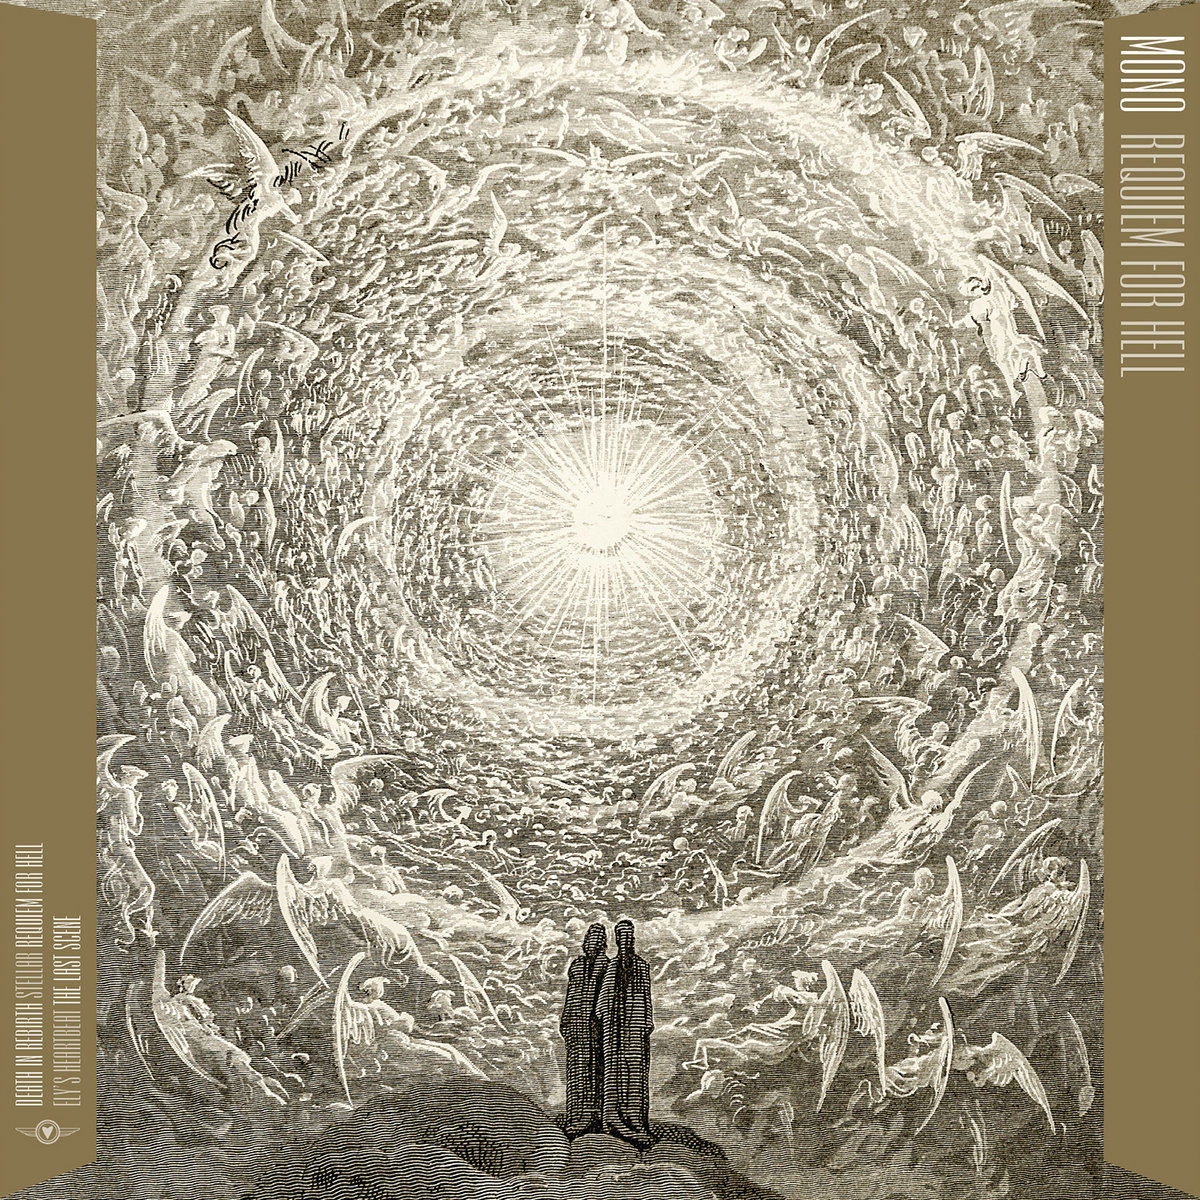 mono-x-gustave-dore-requiem-for-hell